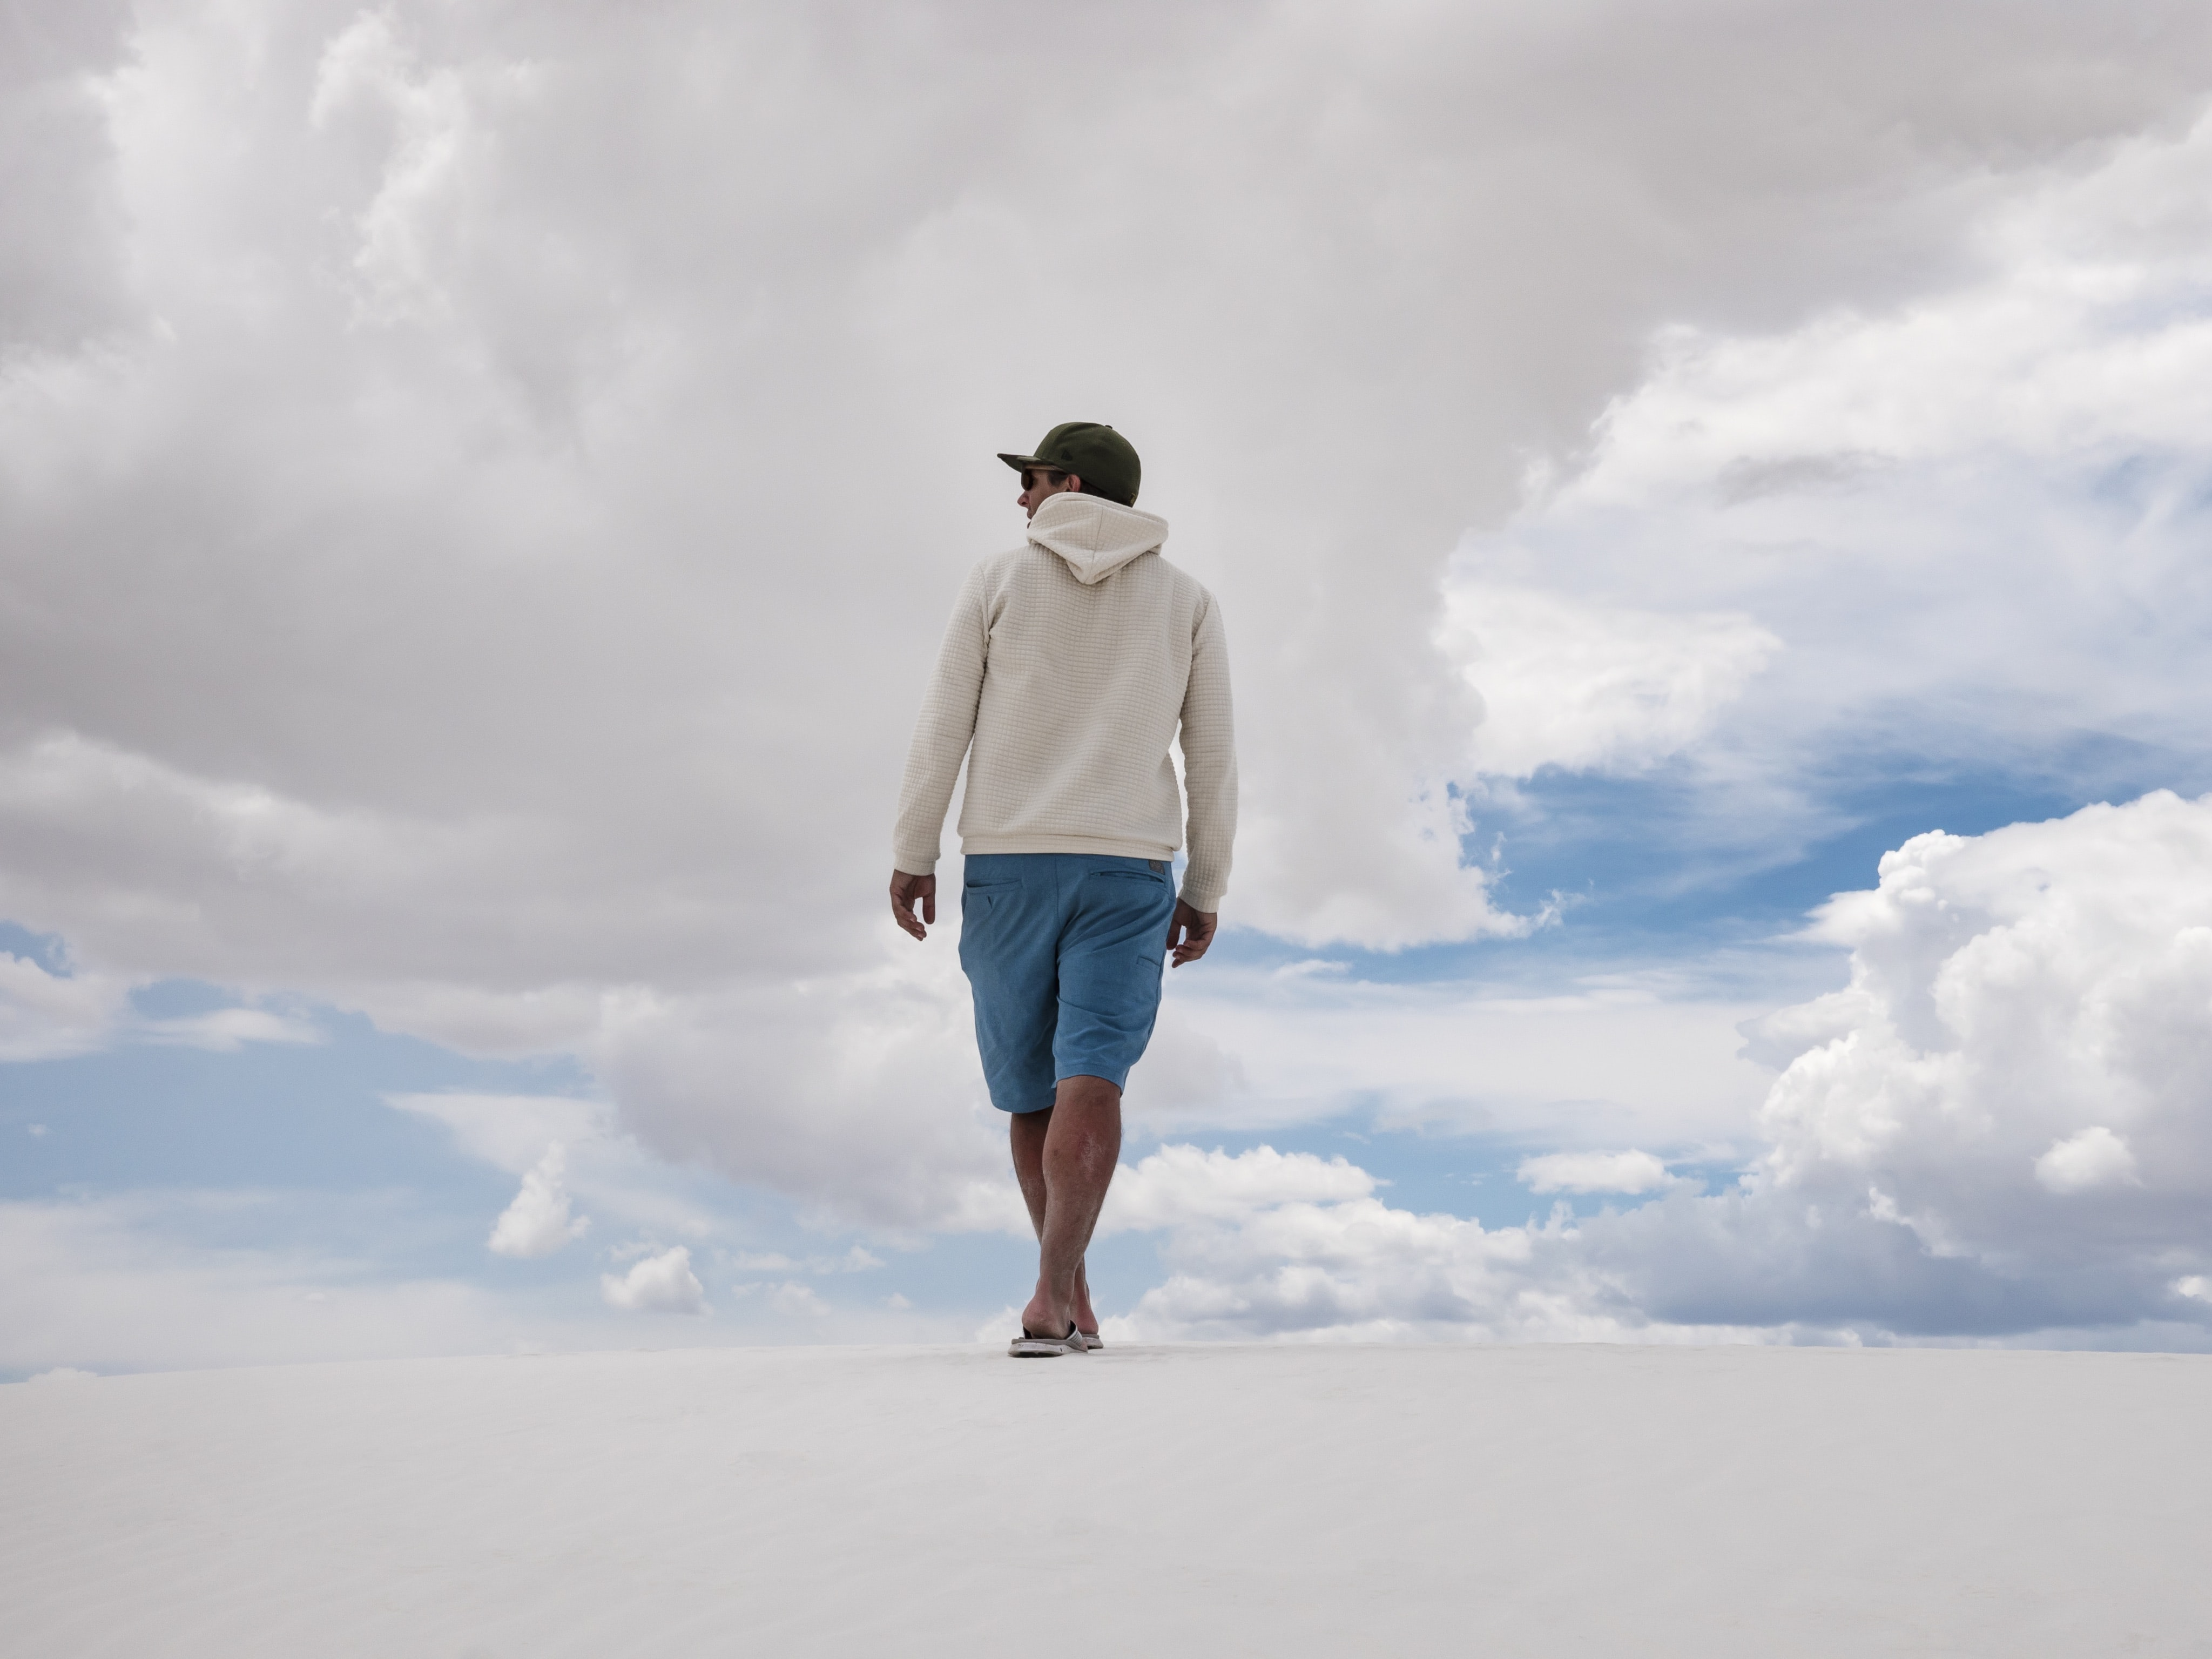 man walking on white surface under white clouds and blue sky during daytime